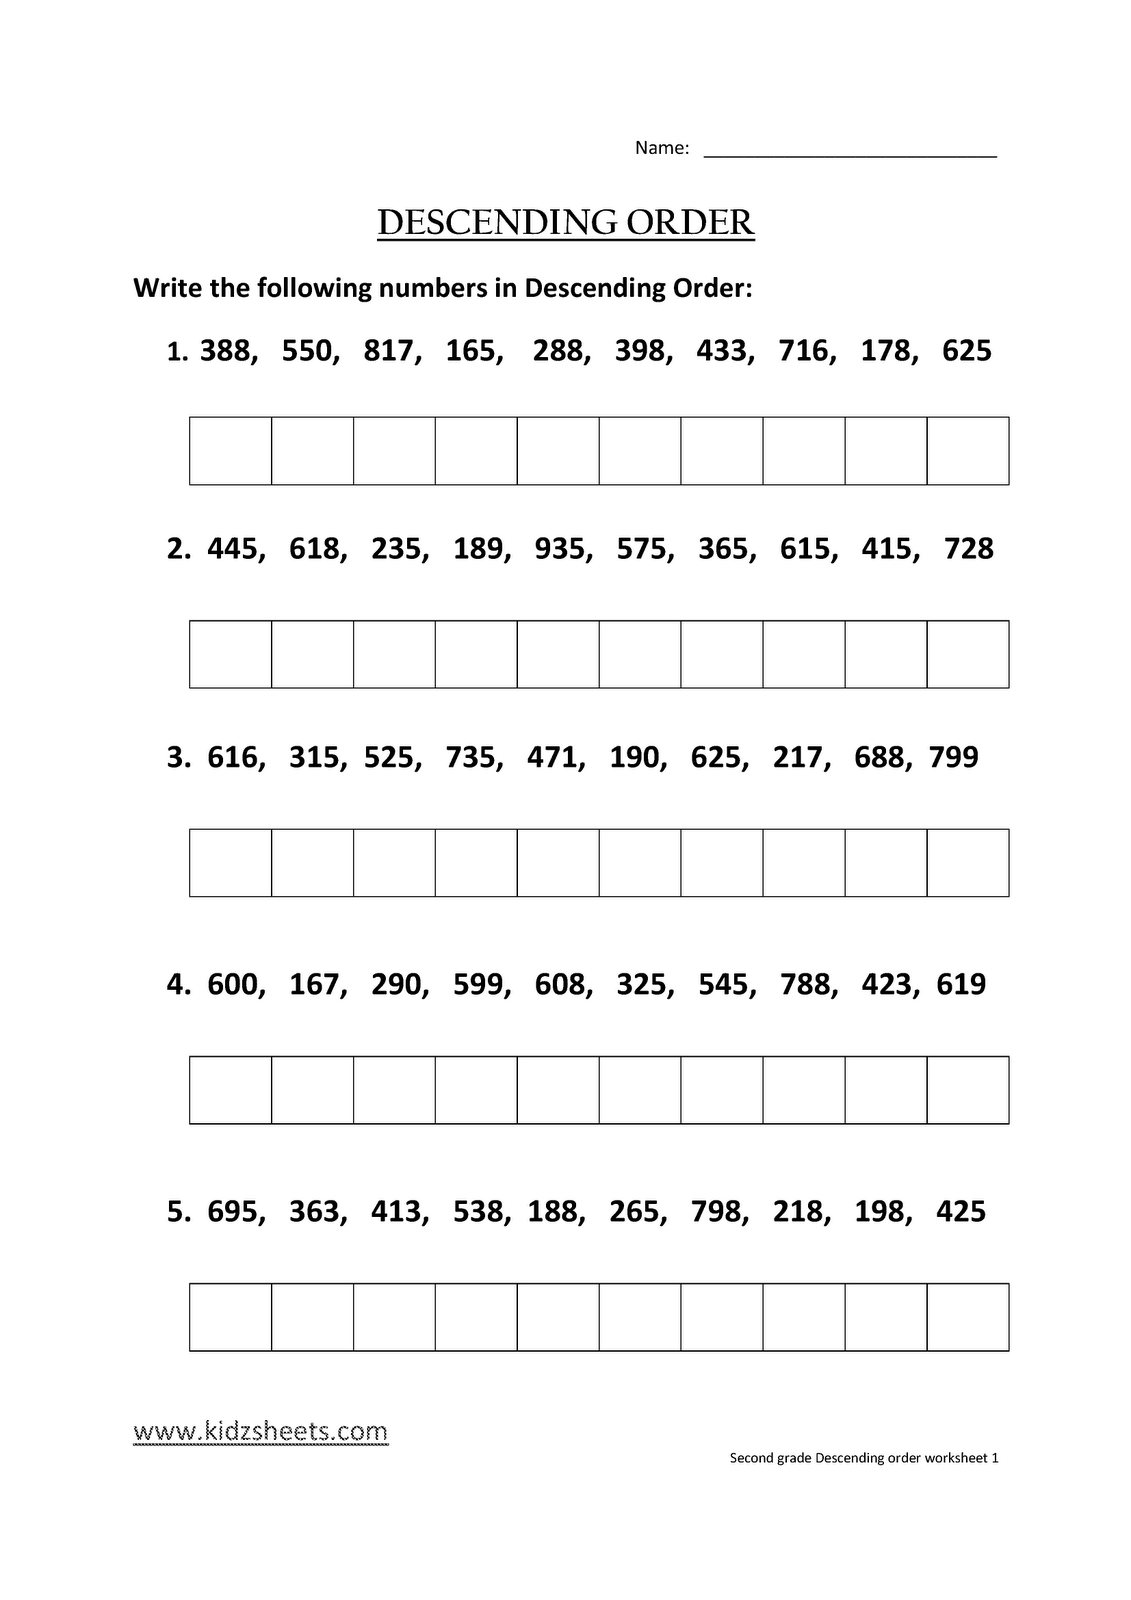 Ascending And Descending Order Worksheets For Kids